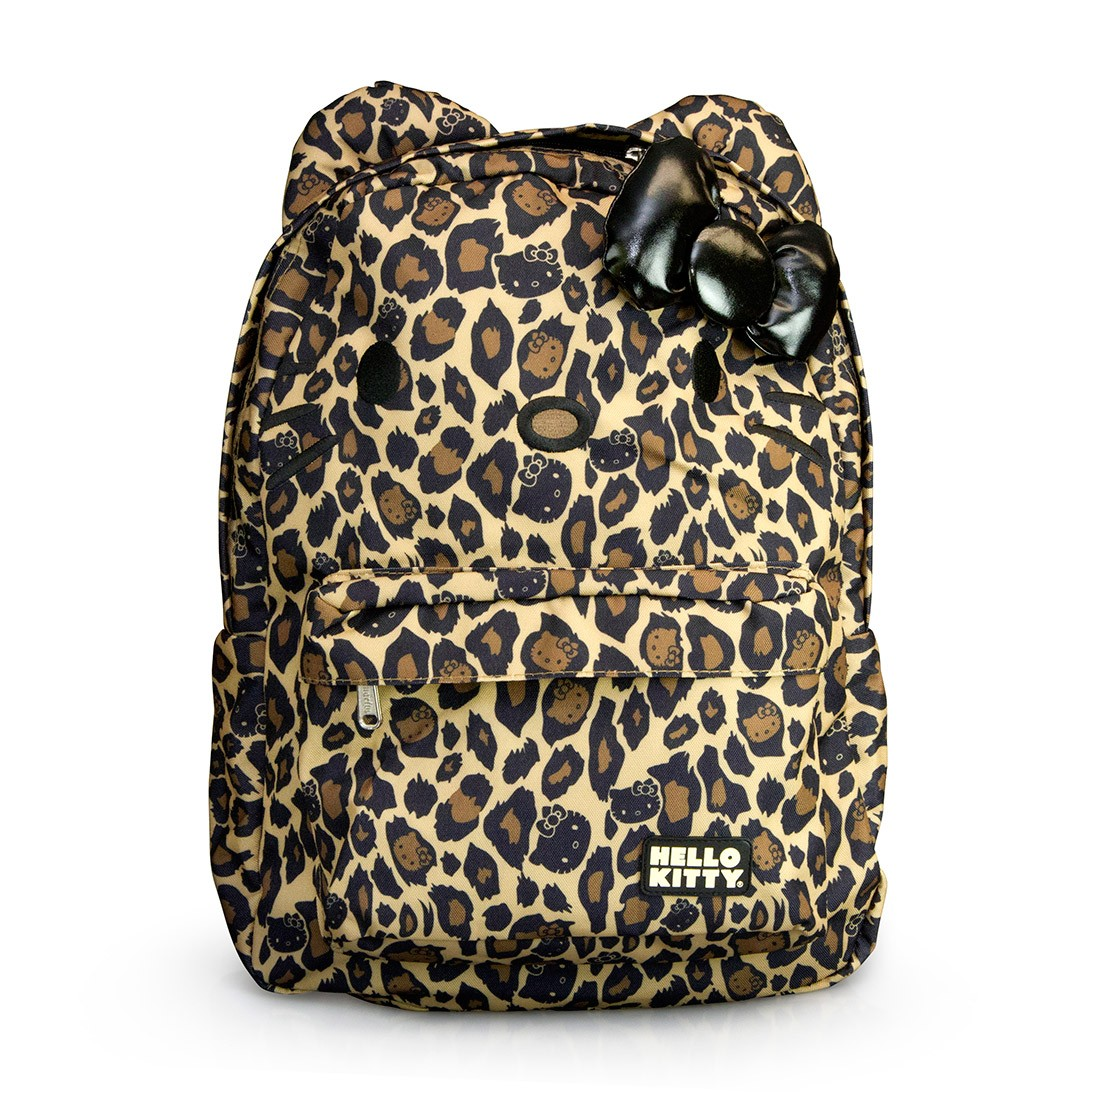 Hello kitty leopard with black bow backpack